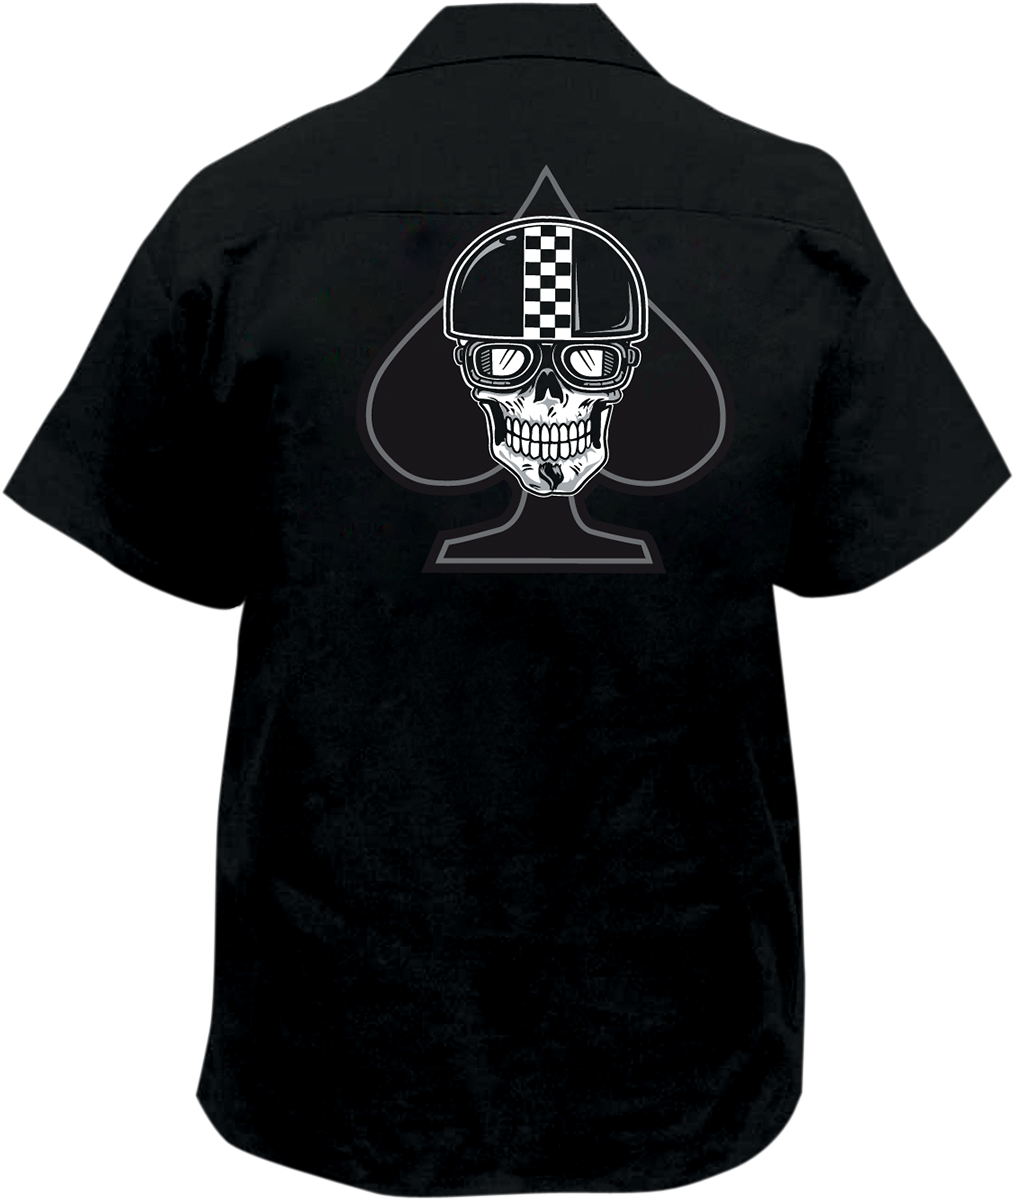 Lethal threat spade embroidered biker work shirt for Embroidered work shirts online